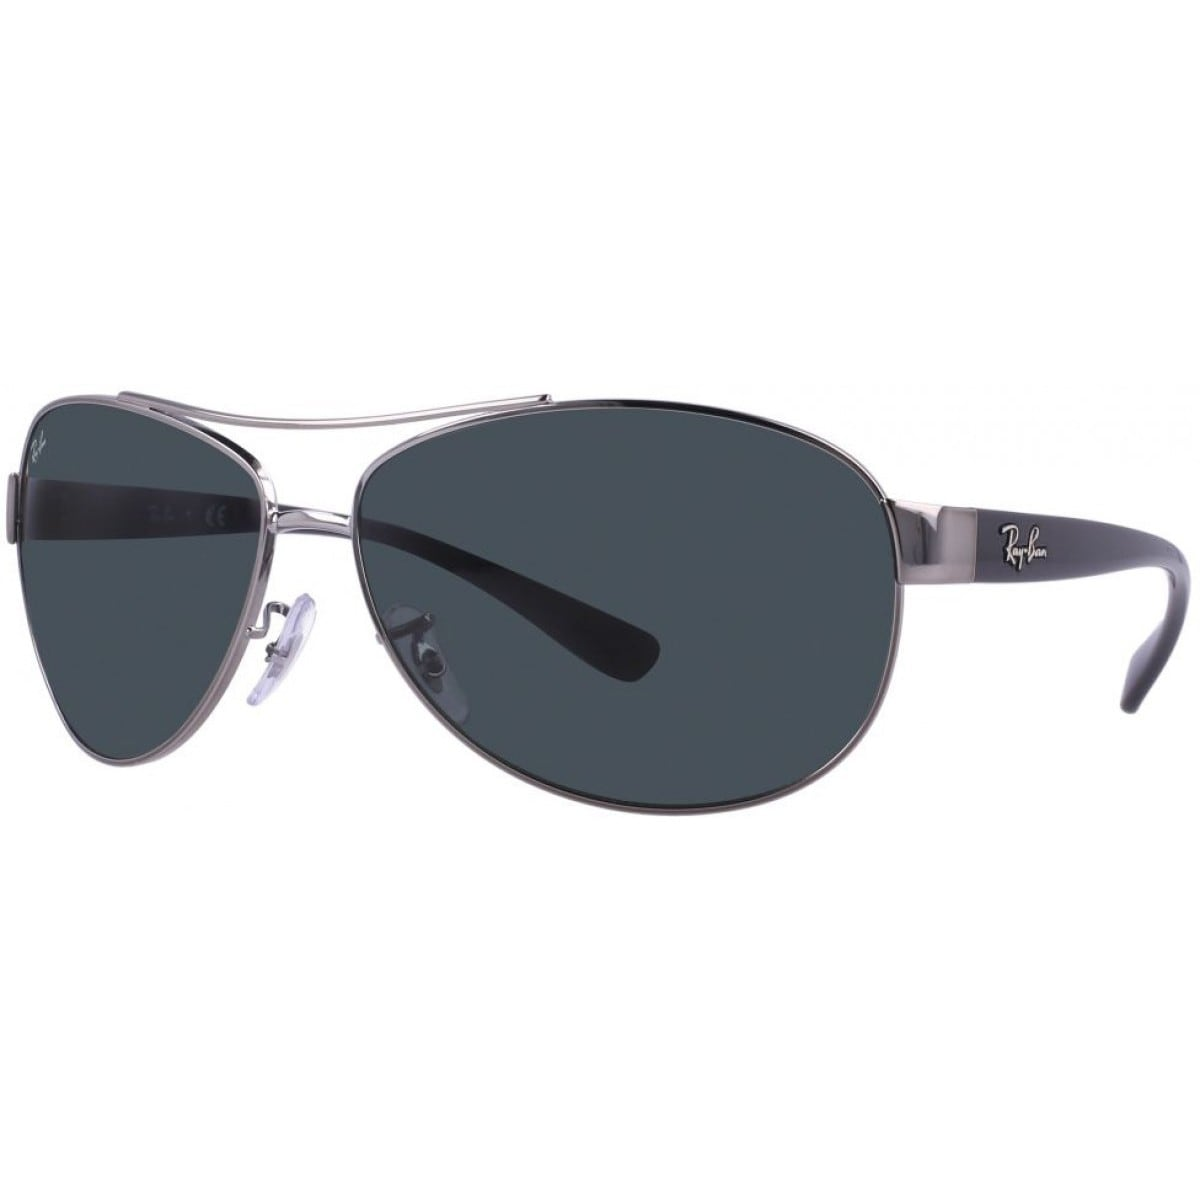 fa4e320813f Shop Ray Ban RB3386 004 71 Gunmetal Black Frame Green Classic 63mm Lens  Sunglasses - Free Shipping Today - Overstock - 11863067